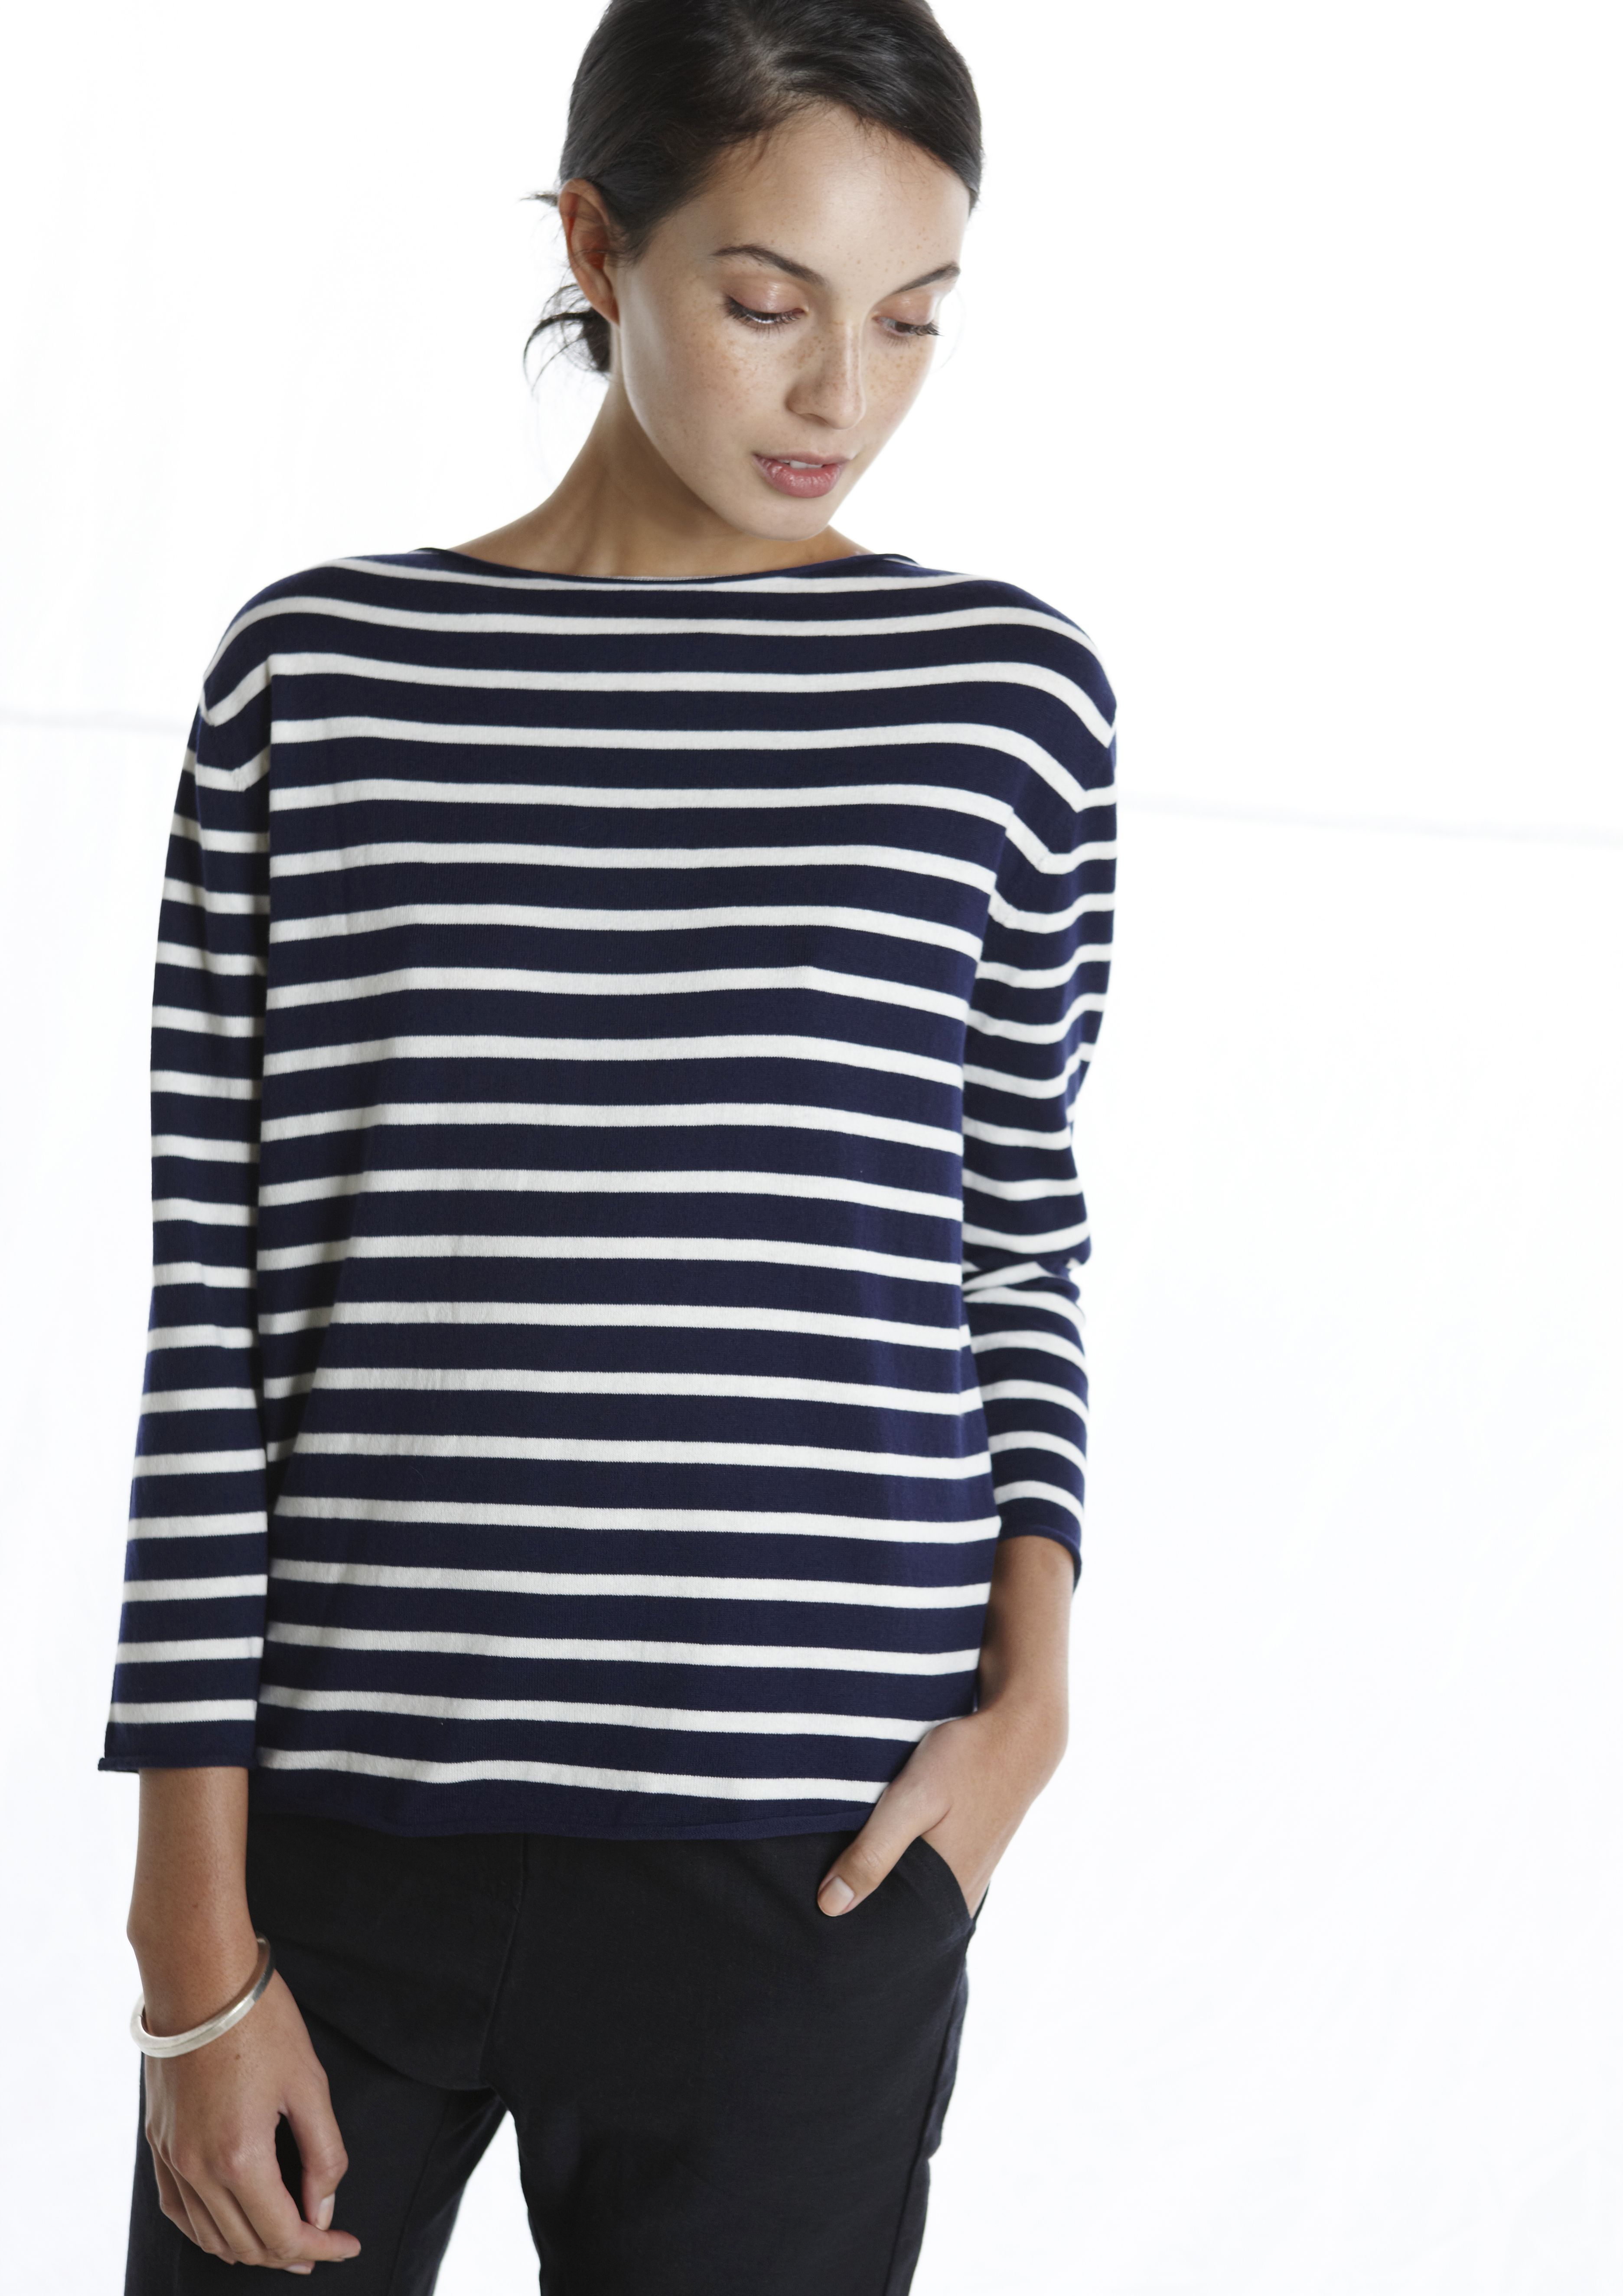 Resort Boatneck navy/white Striped top, Navy and white